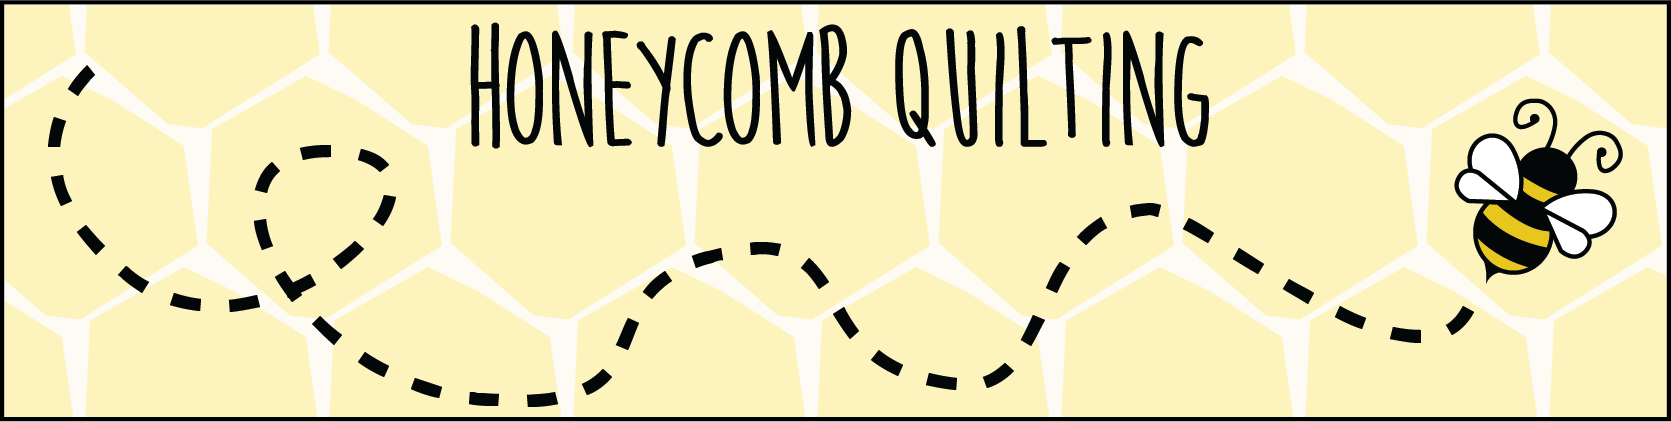 Honeycomb Quilting Logo